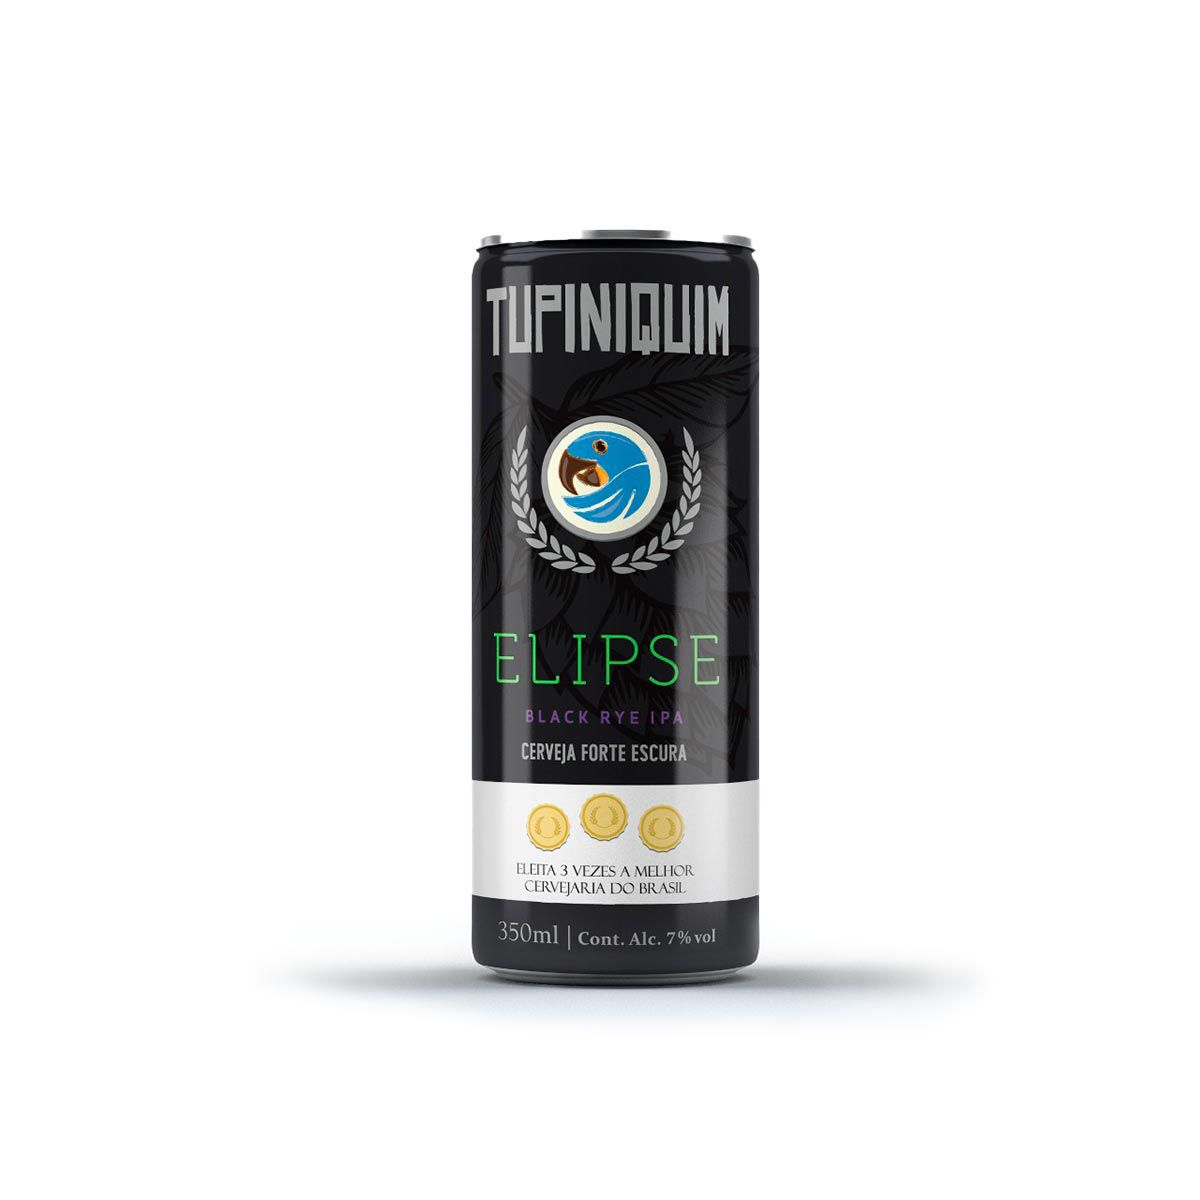 Tupiniquim Elipse Black IPA 350ml